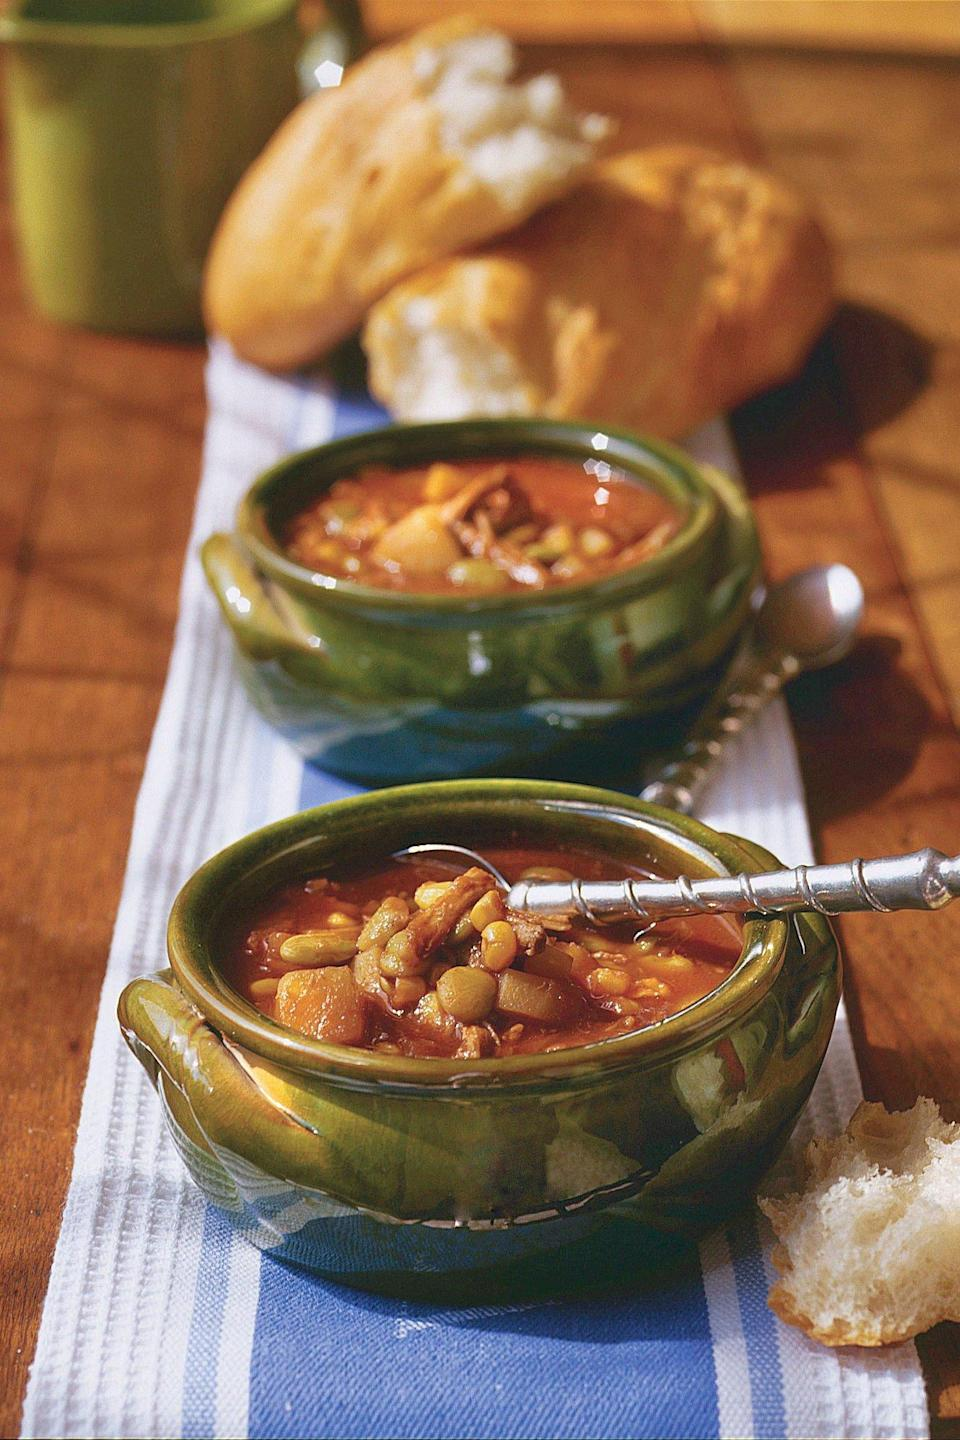 """<p><strong>Recipe:</strong> <a href=""""http://www.myrecipes.com/recipe/easy-brunswick-stew-10000001152943/"""" rel=""""nofollow noopener"""" target=""""_blank"""" data-ylk=""""slk:Easy Brunswick Stew"""" class=""""link rapid-noclick-resp""""><strong>Easy Brunswick Stew</strong></a></p> <p>Cooking on low heat for a long time makes the meat extremely tender, so it shreds easily; high heat yields a less tender product.</p>"""